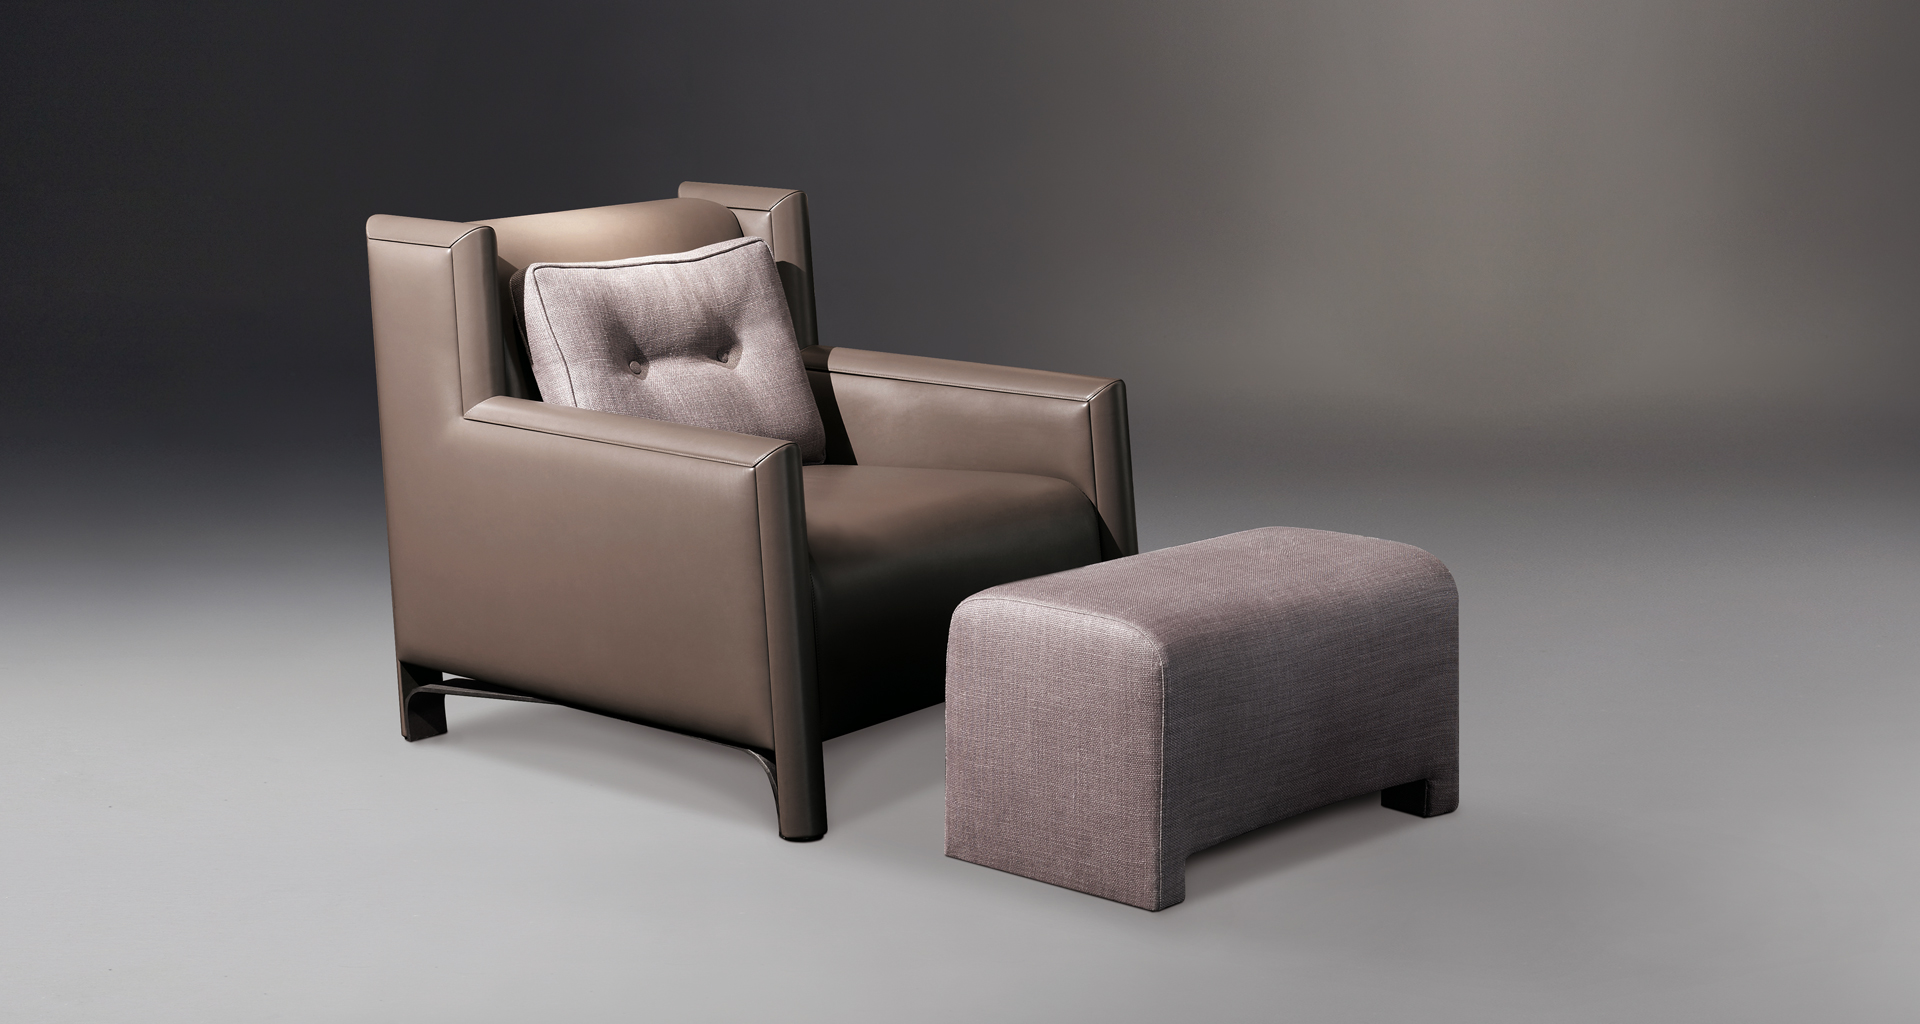 Ginevra is a wooden armchair covered in leather or fabric with bronze feet, from Promemoria's catalogue | Promemoria